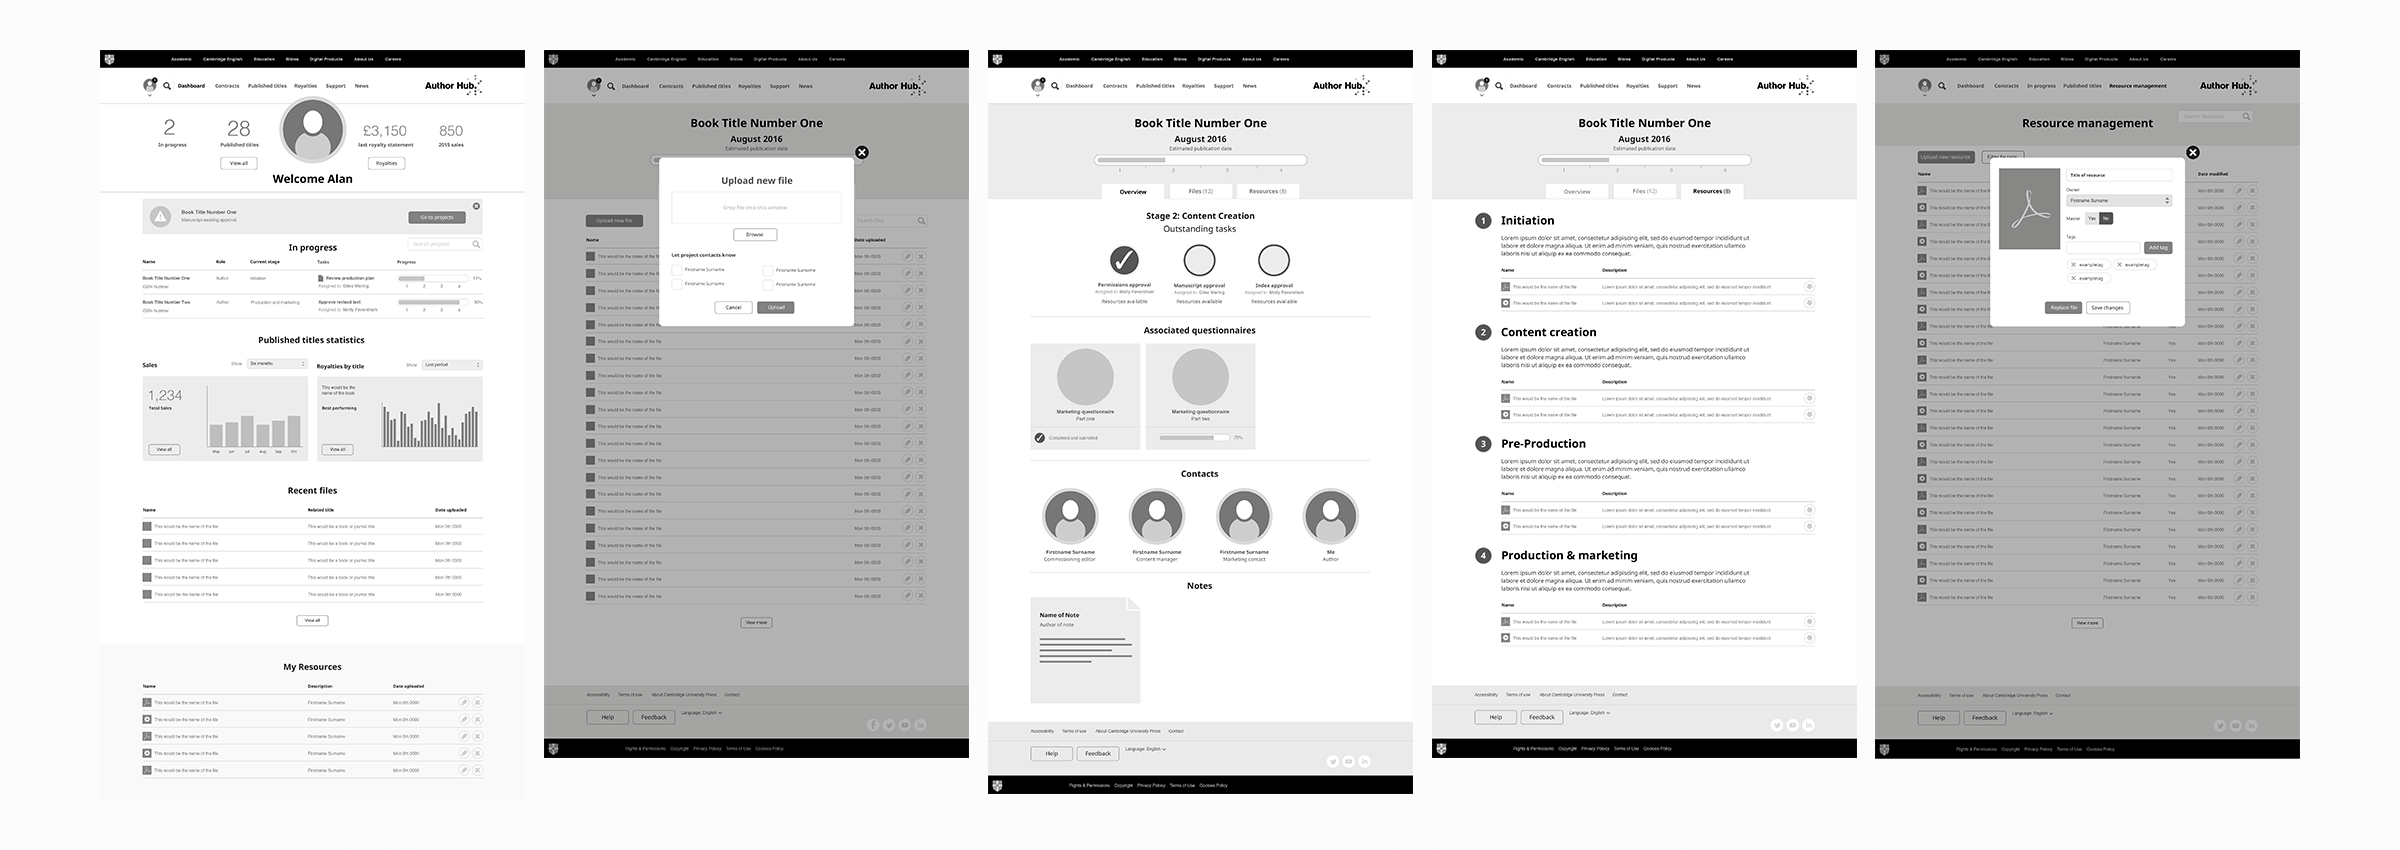 authorhub_wireframes_a1.png